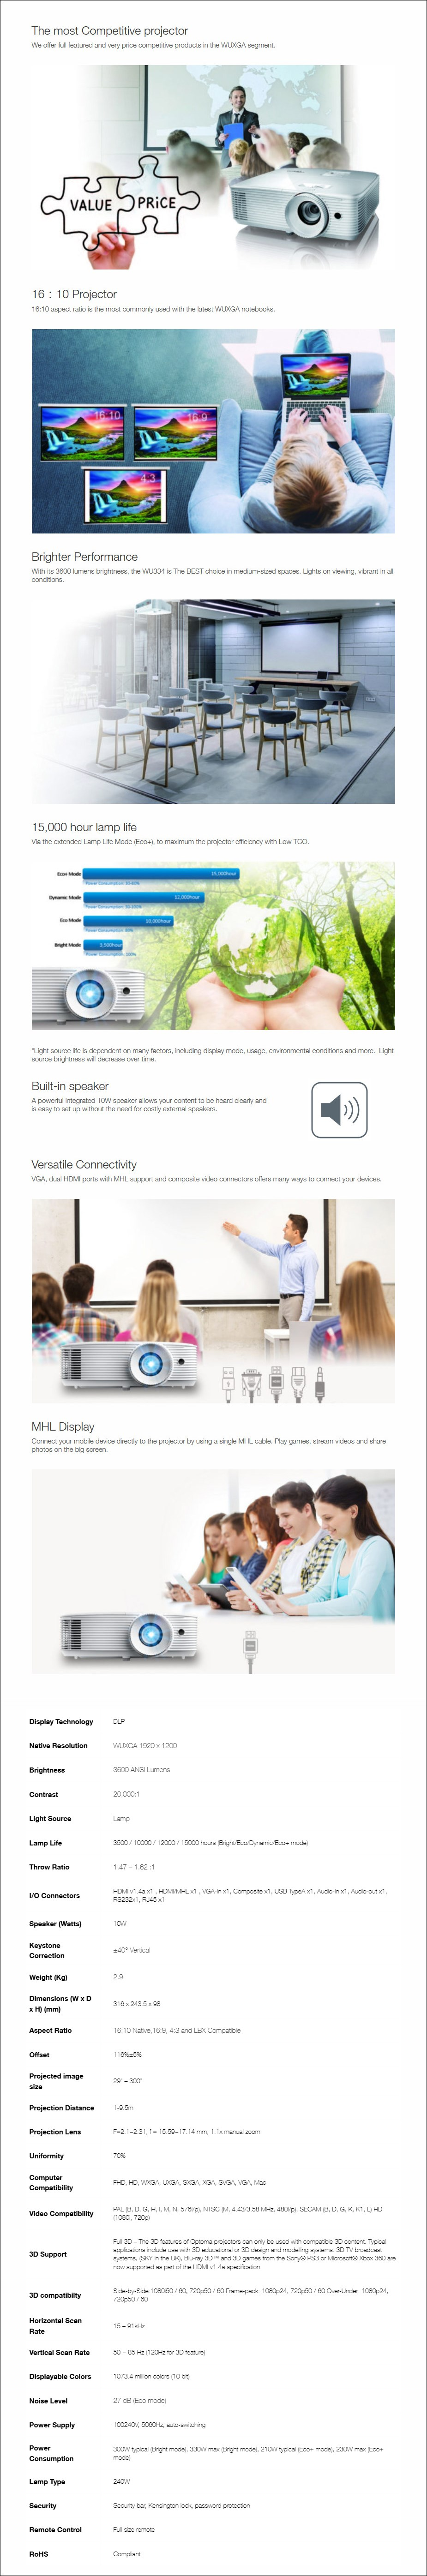 Optoma WU334 WUXGA 3600 Lumens Compact DLP Projector - Overview 1